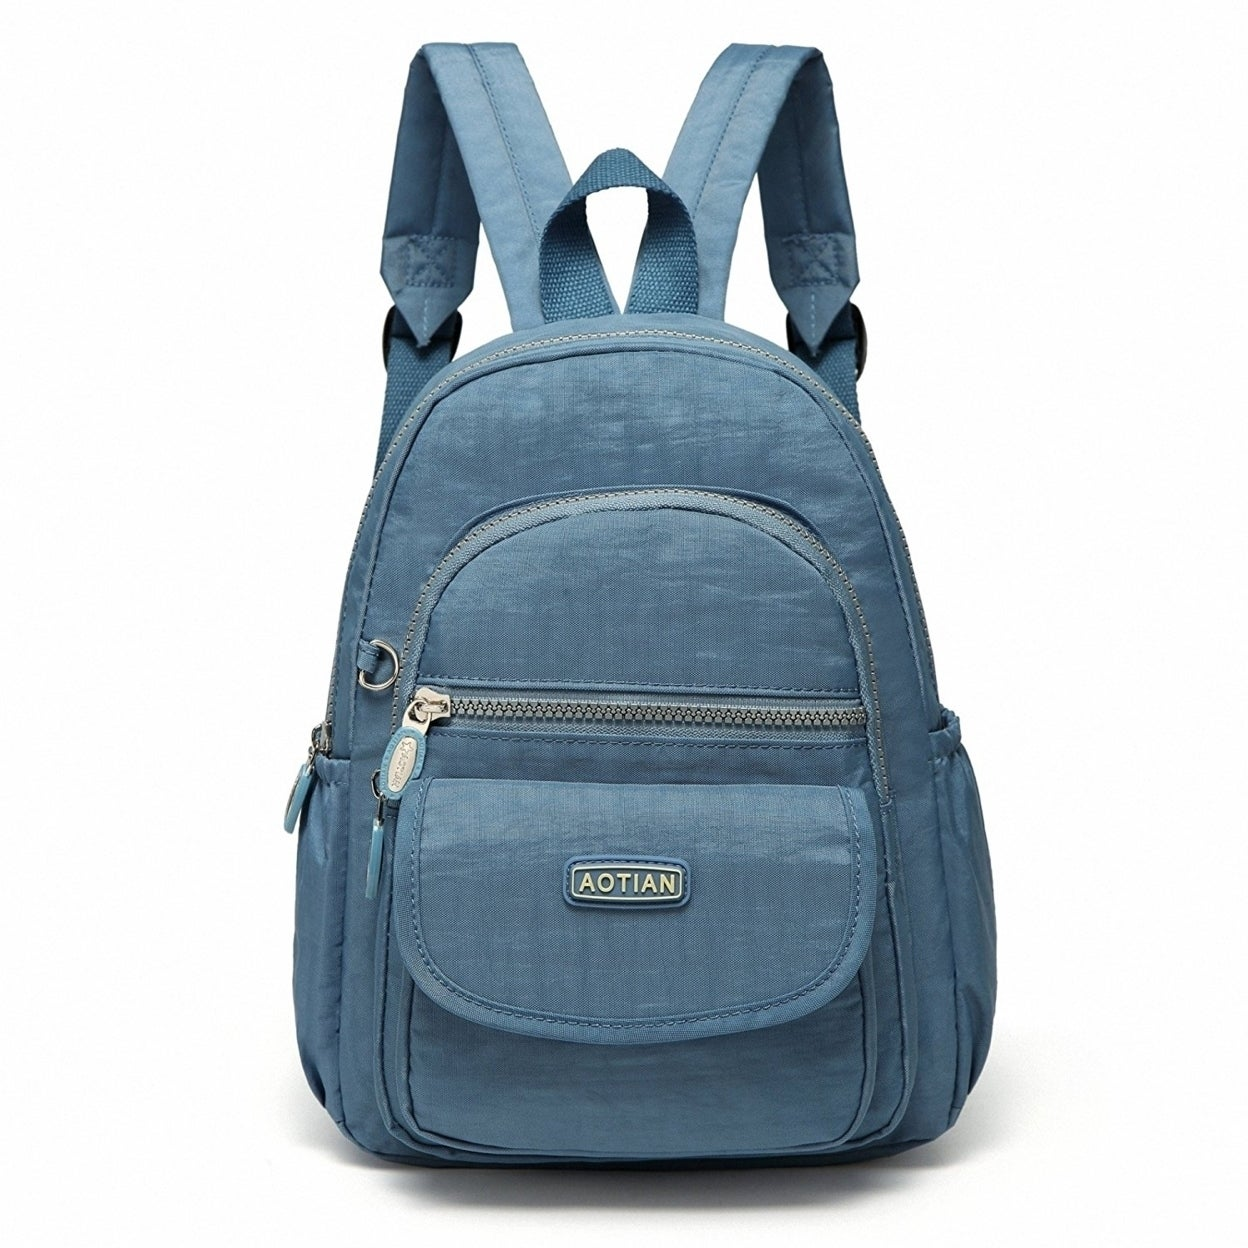 04b2e2878908 Shop Mini Nylon Women Backpacks Casual Lightweight Strong Small Packback  Daypack For Girls Cycling Hiking Camping Travel Outdoor - On Sale - Free  Shipping ...